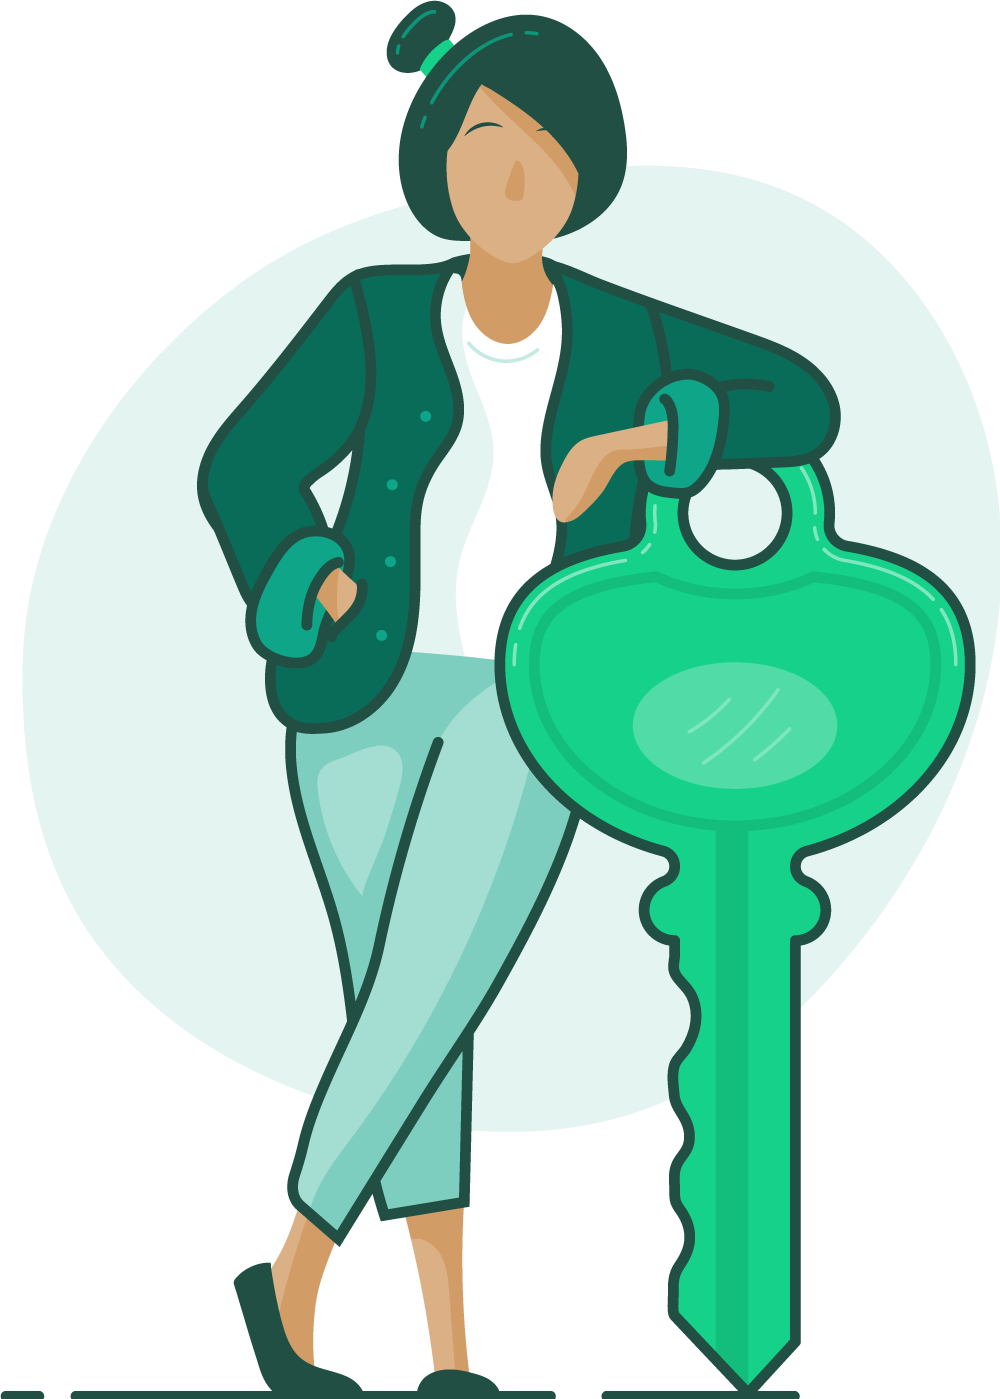 illustration of a woman leaning on a large key